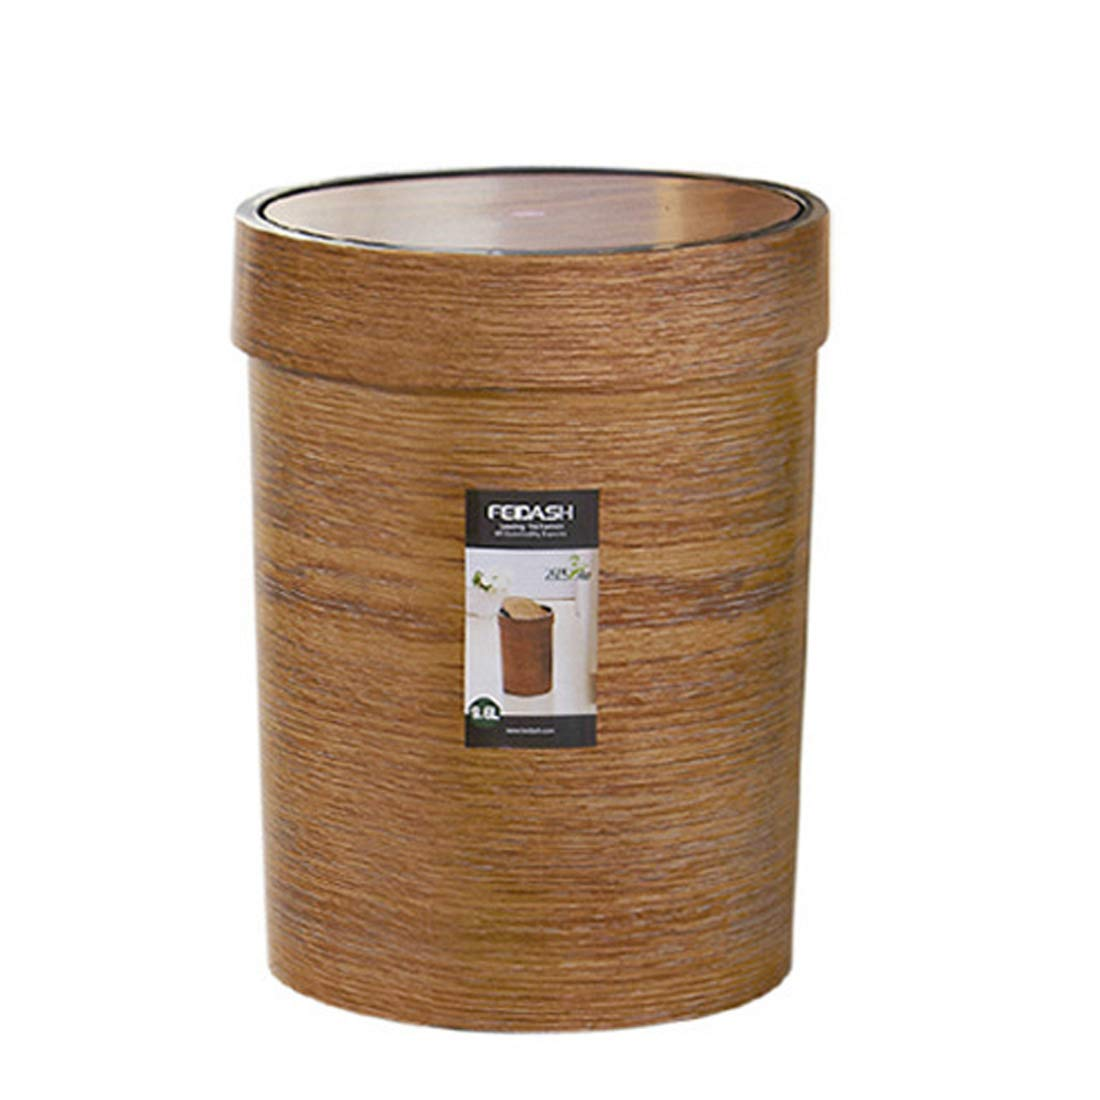 HMANE 10L Trash Can Swing Top, Plastic Retro Style Wood Grain Waste Basket Swing-lid Garbage Bin